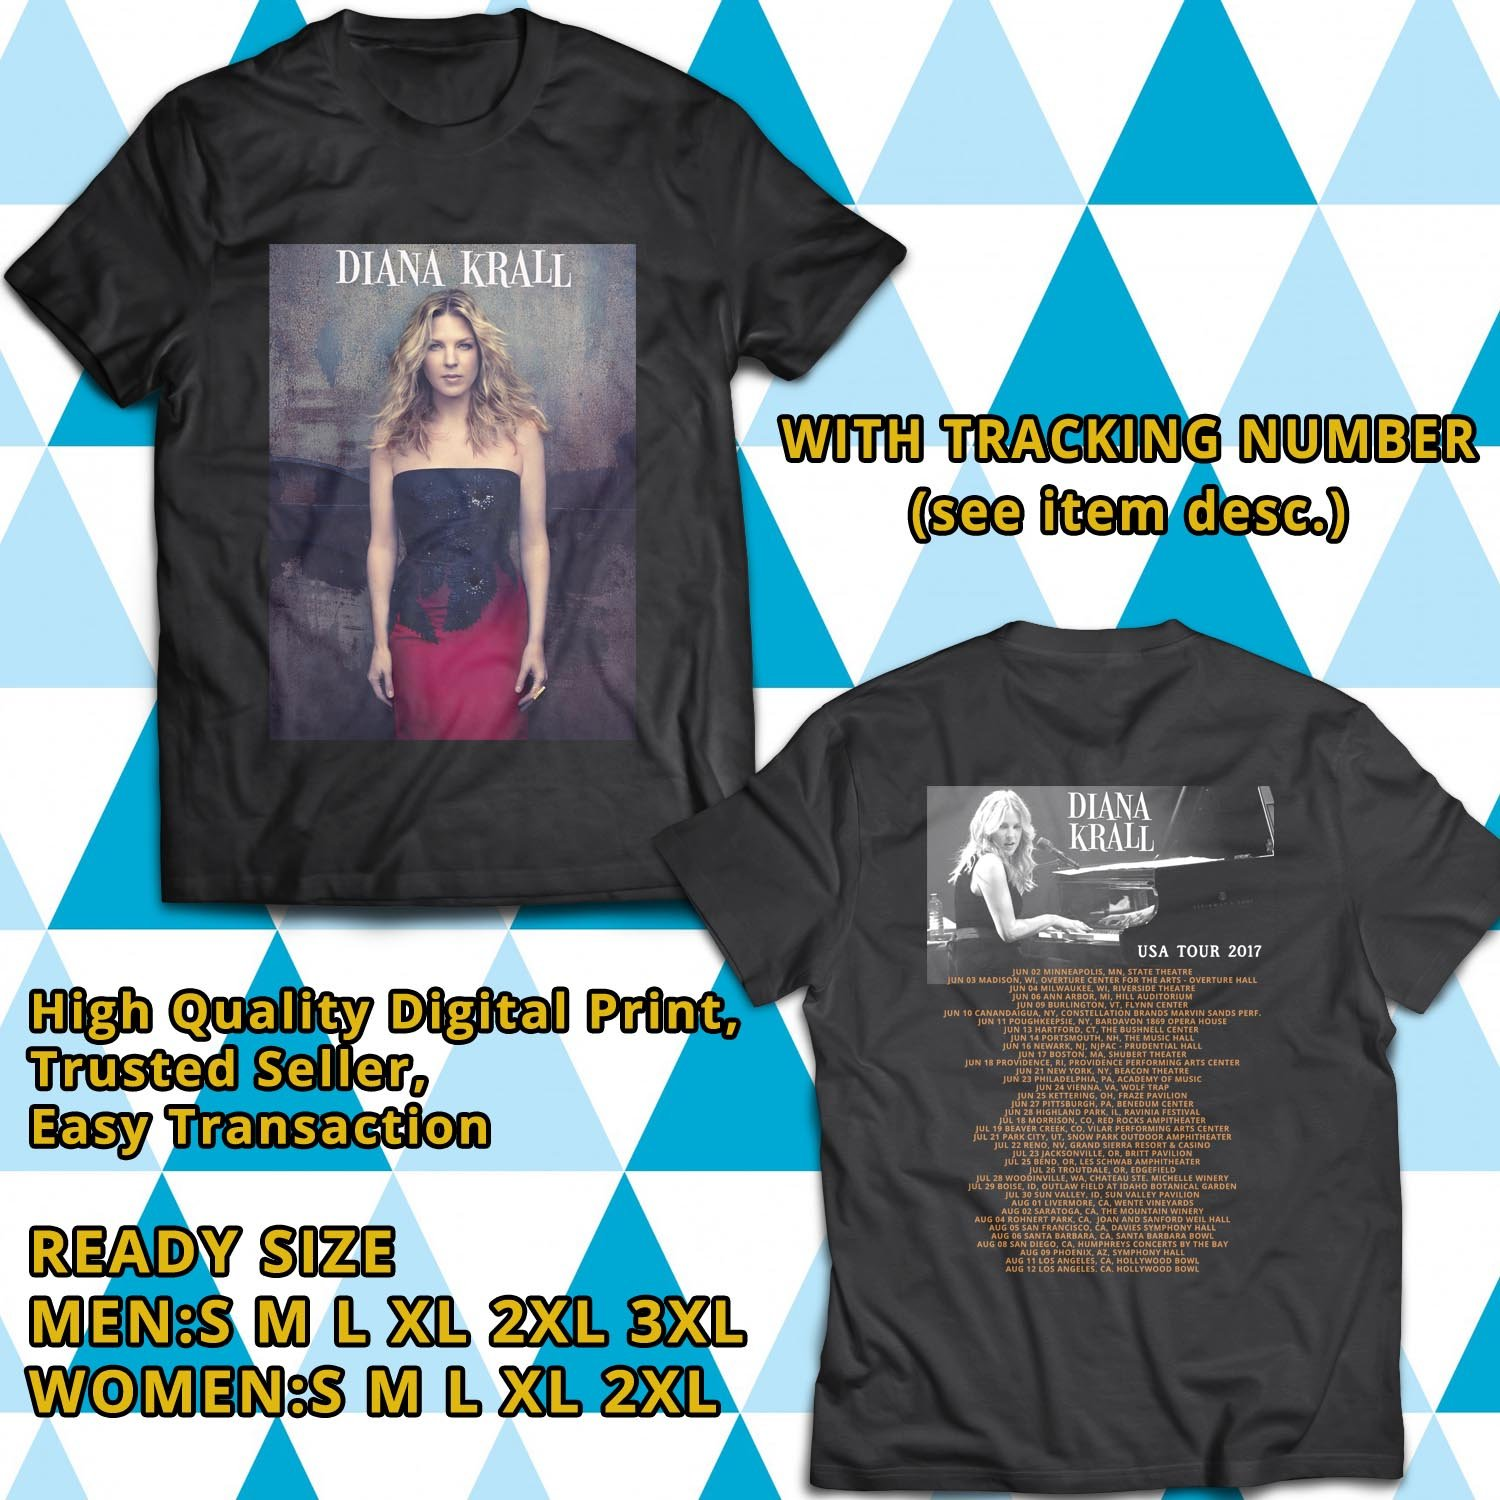 HITS DIANA KRALL UNITED STATES TOUR 2017 BLACK TEE'S 2SIDE MAN WOMEN ASTR 333